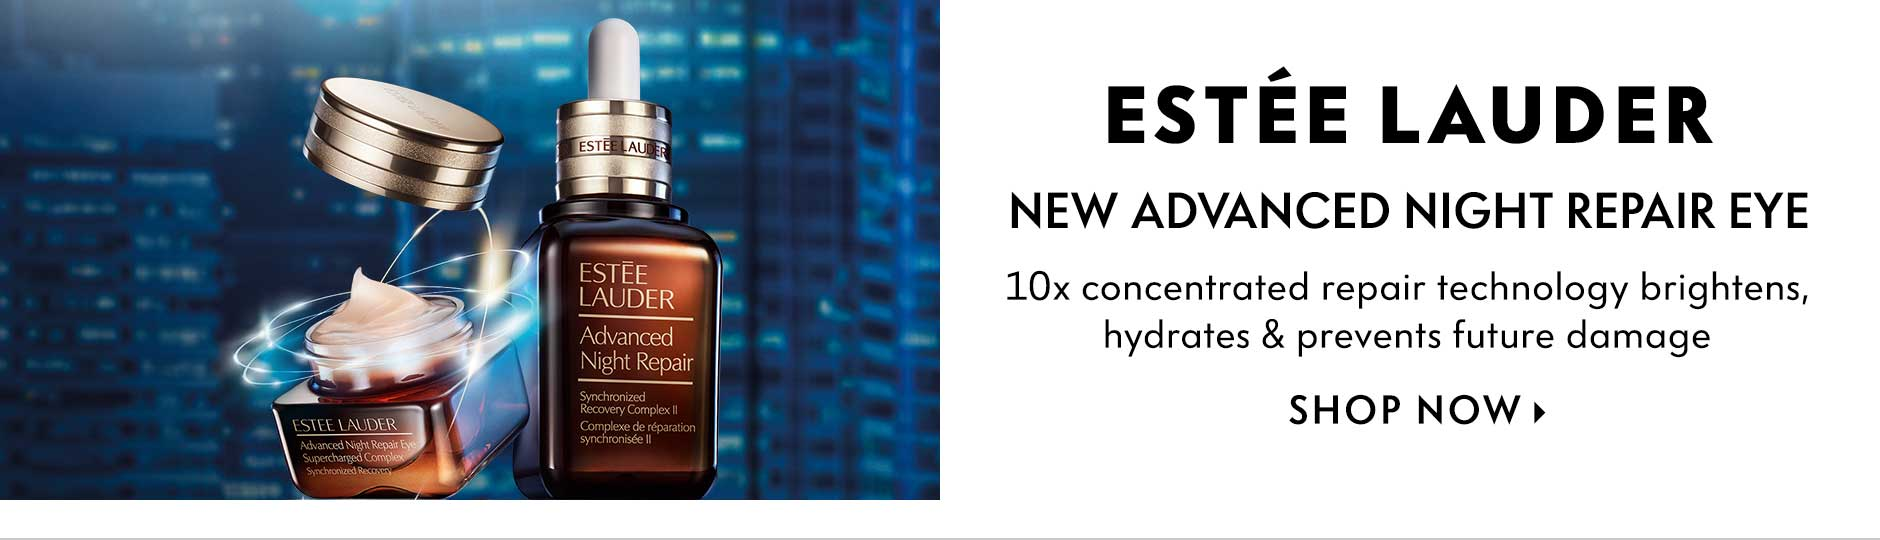 Estee Lauder: New Advanced Night Repair Eye - 10x concentrated repair technology brightens, hydrates & prevents future damage